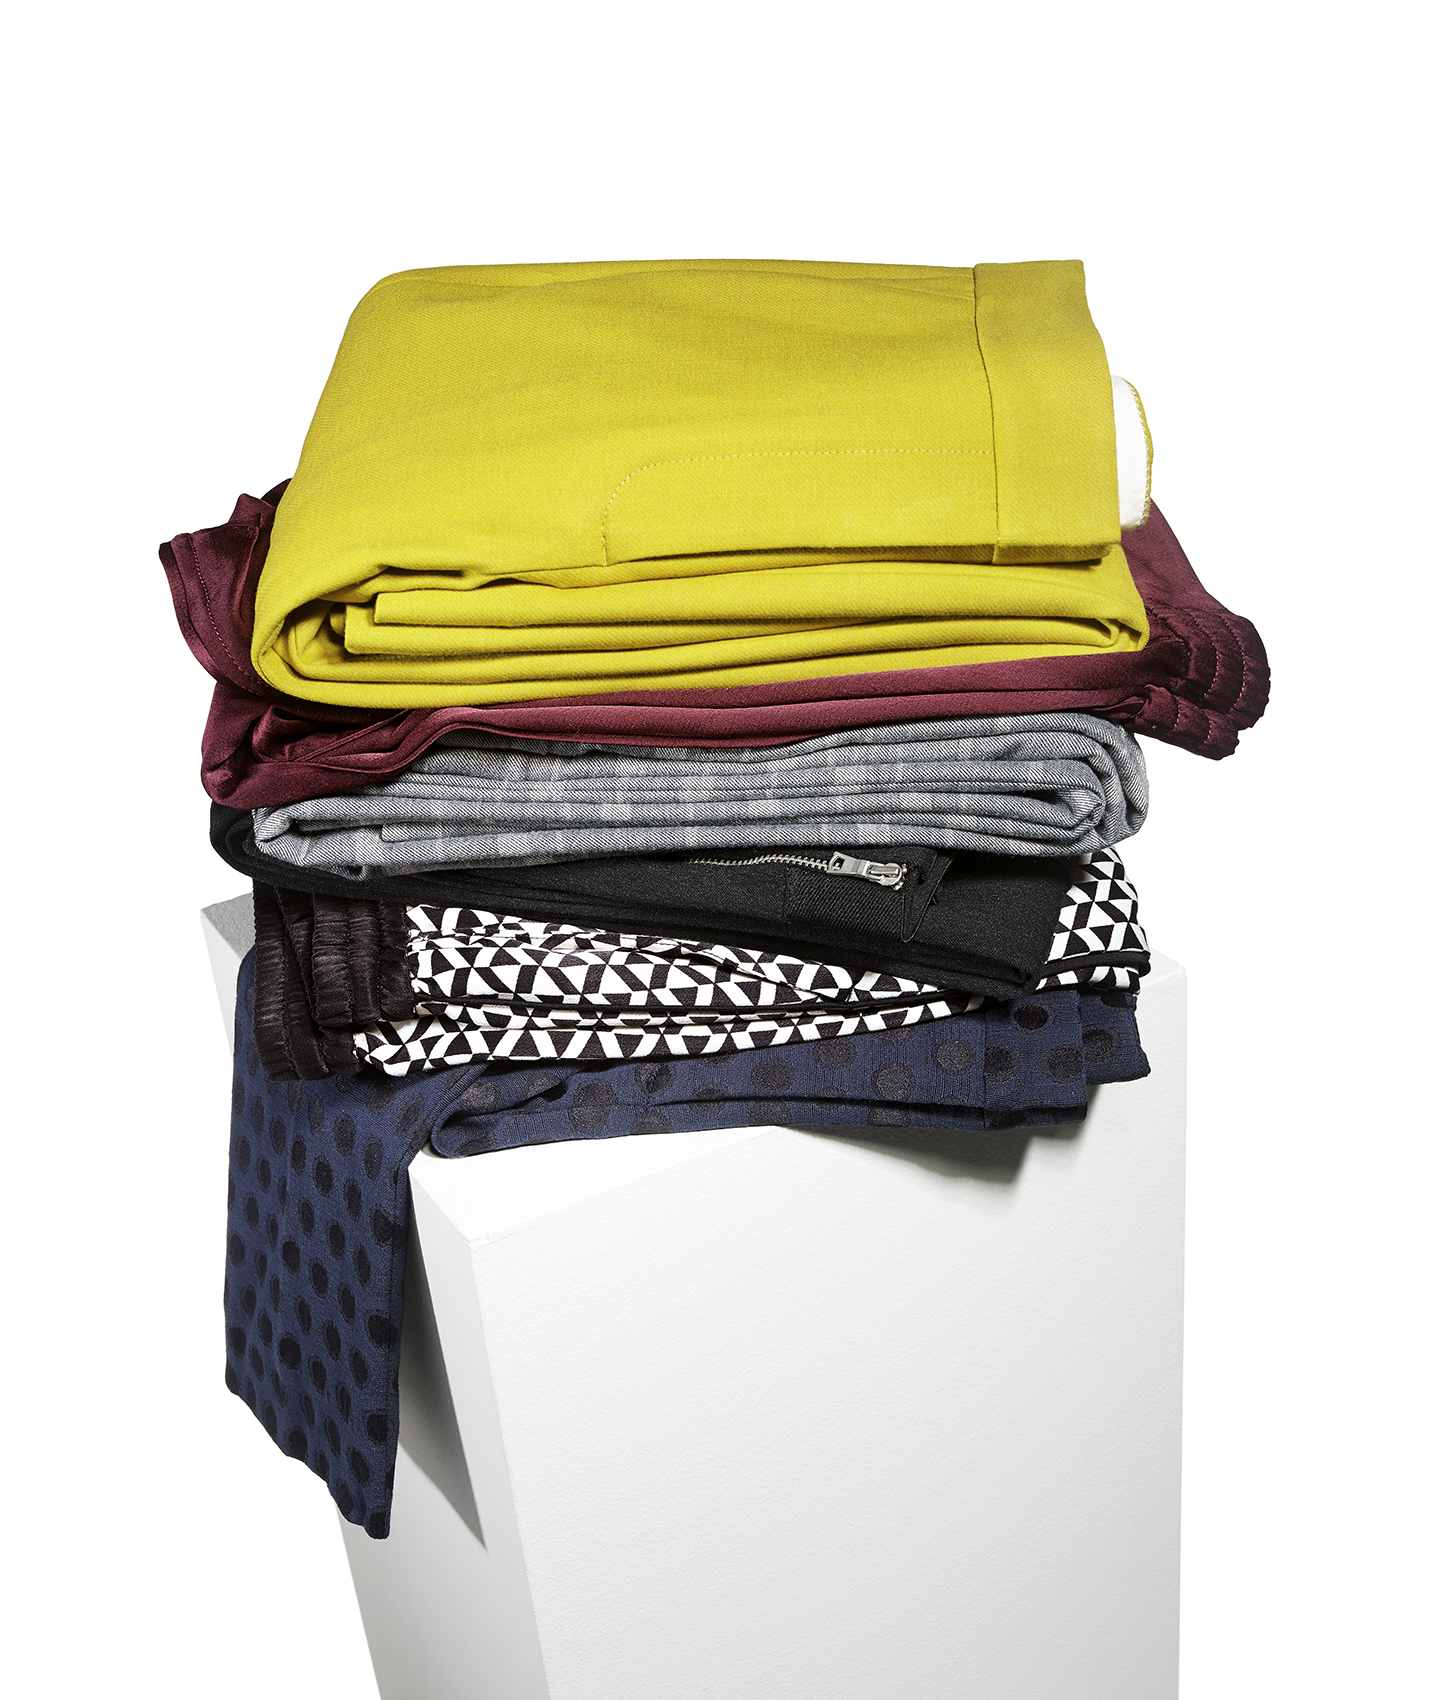 Stack of folded pants on pedestal